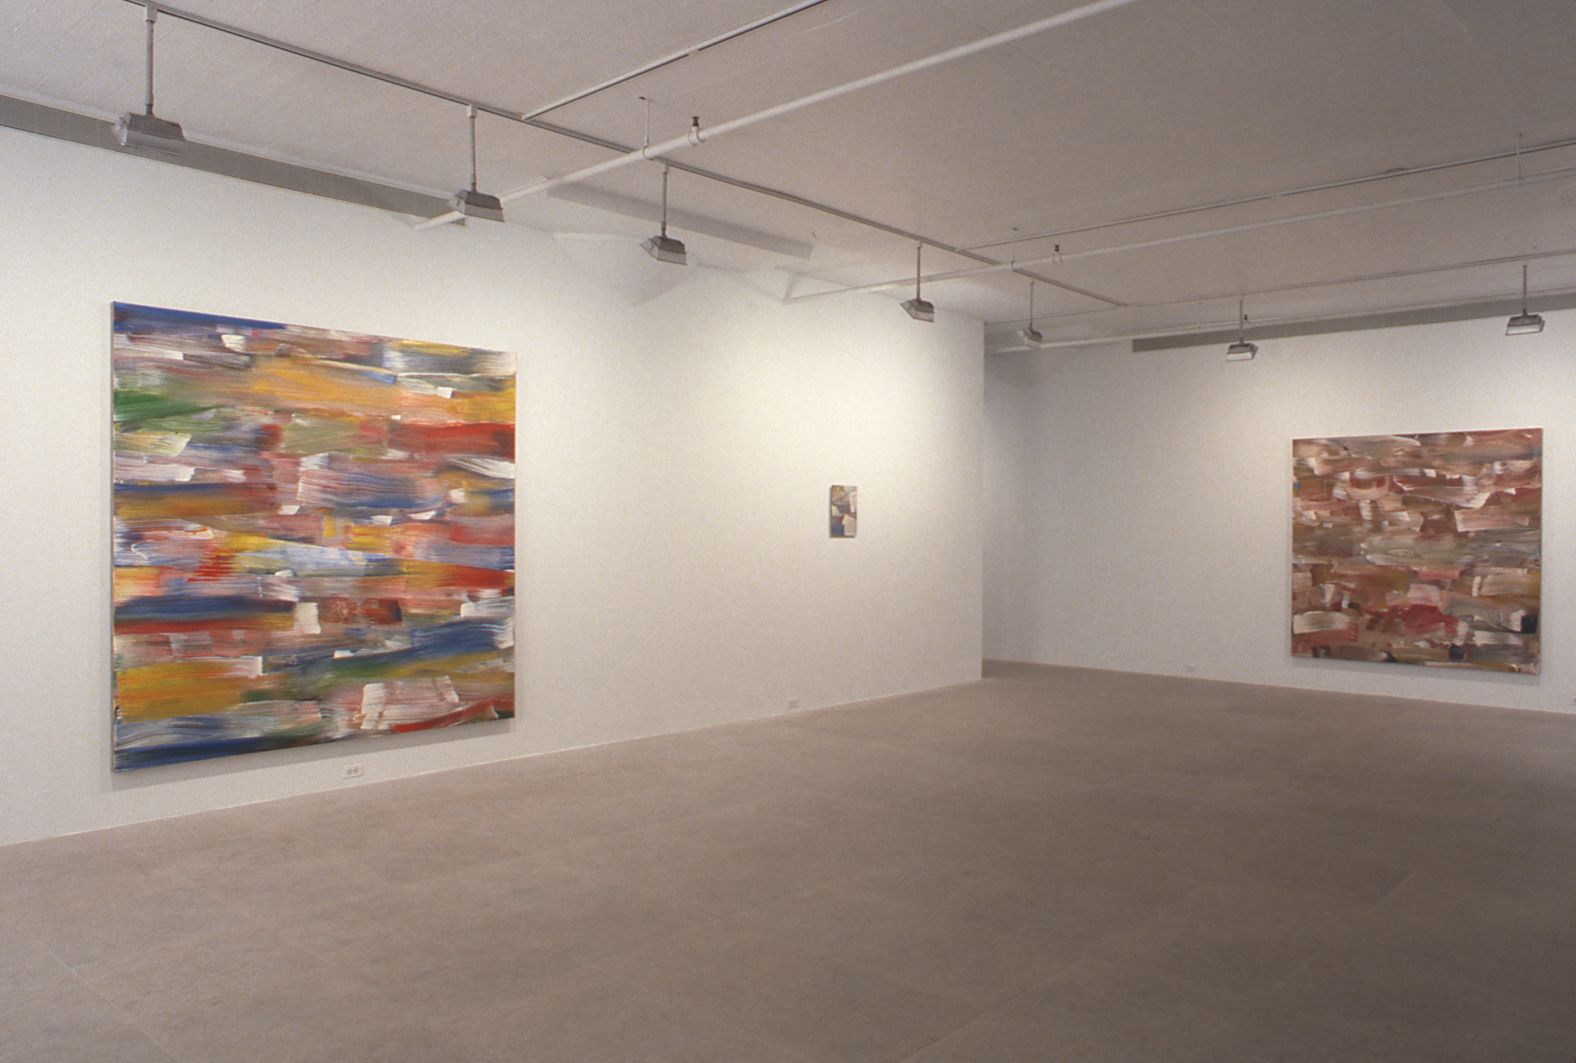 Installation view, Greene Naftali, New York, 1997